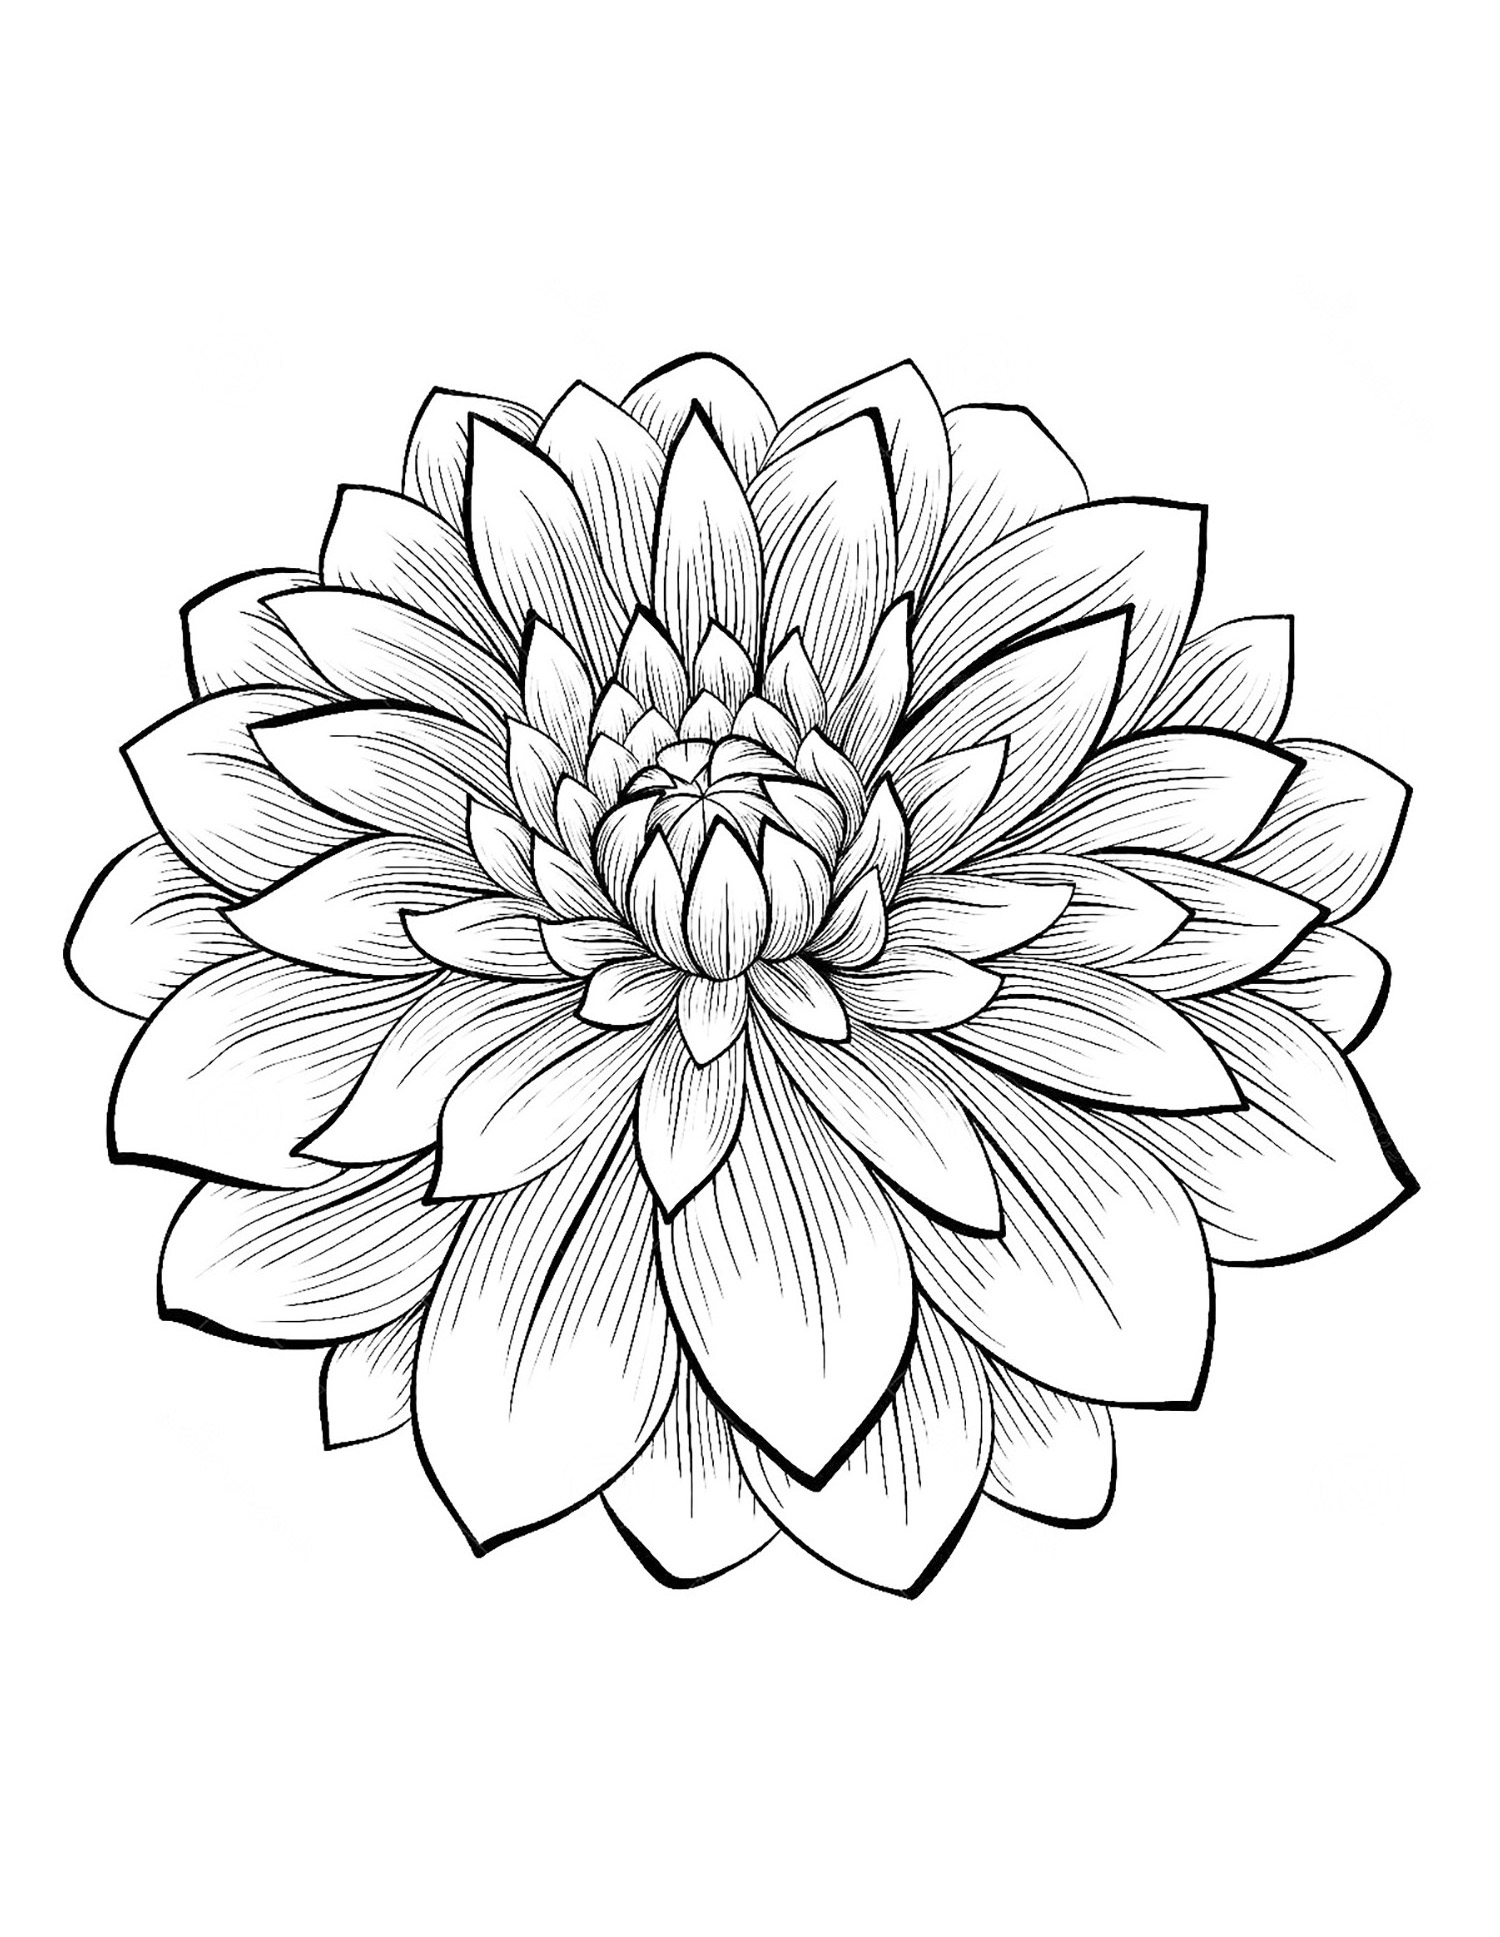 Dahlia coloring #4, Download drawings